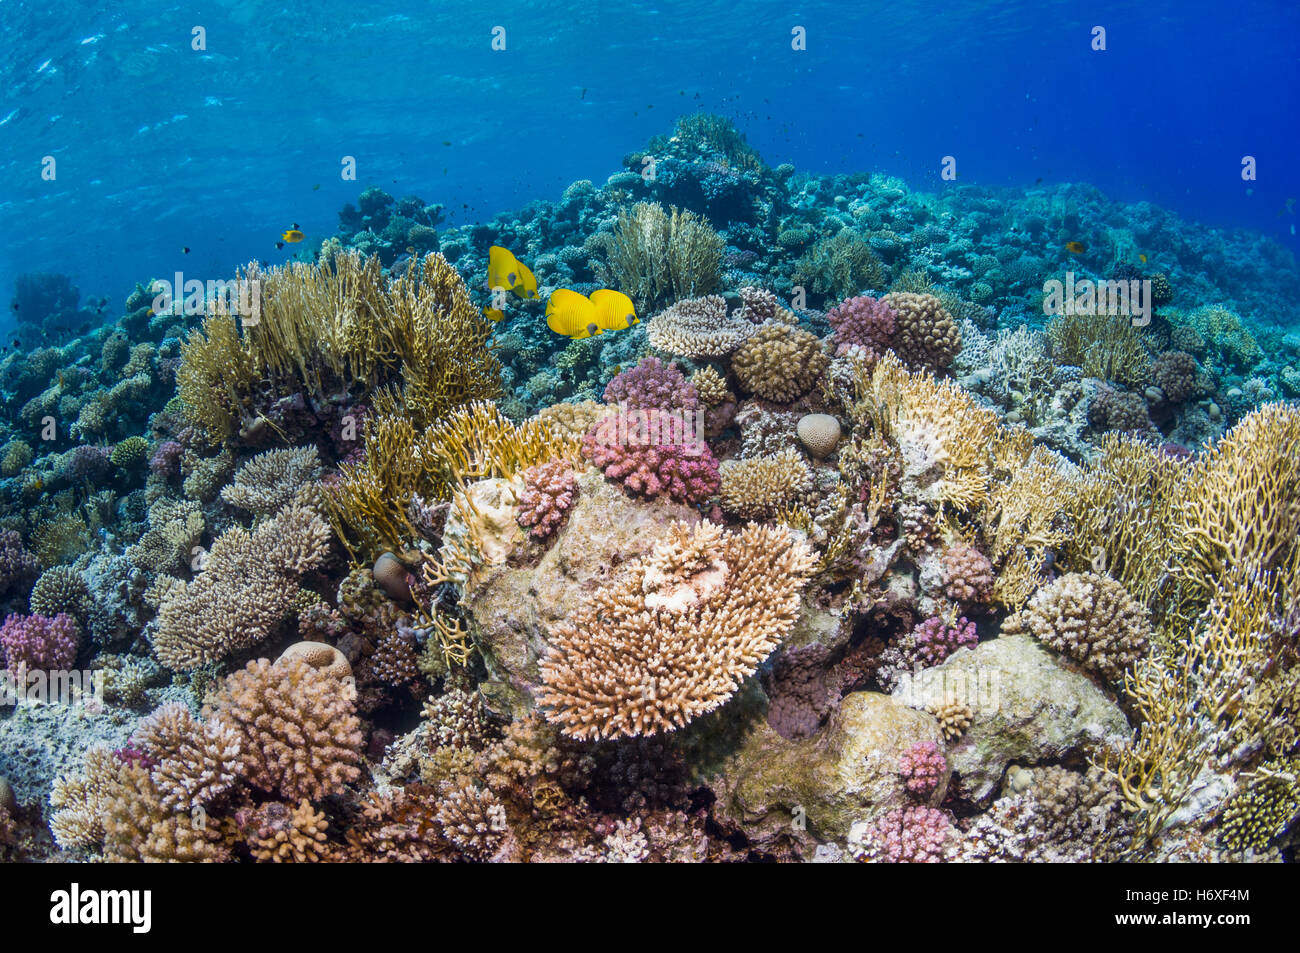 Haut de coral reef avec papillons Chaetodon semilarvatus or []. L'Egypte, Mer Rouge. Photo Stock